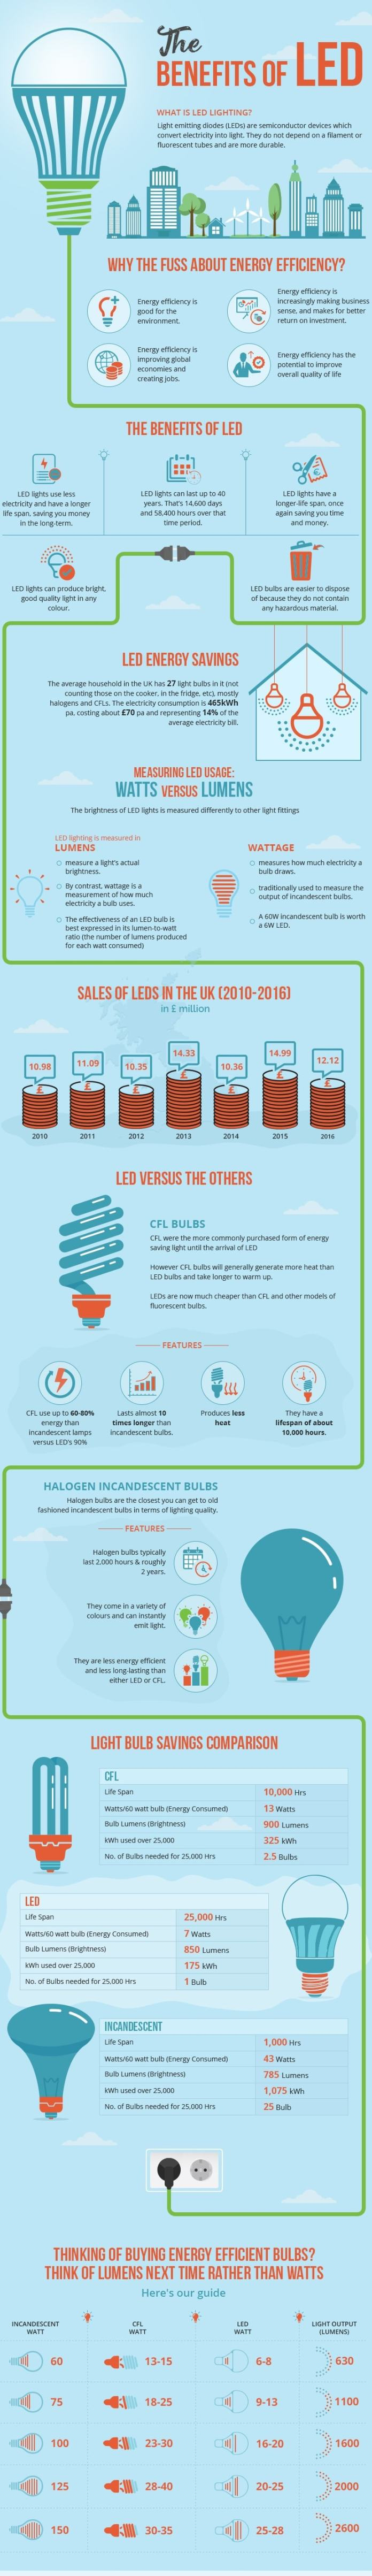 Trend in Lighting and Energy Savings Infographic